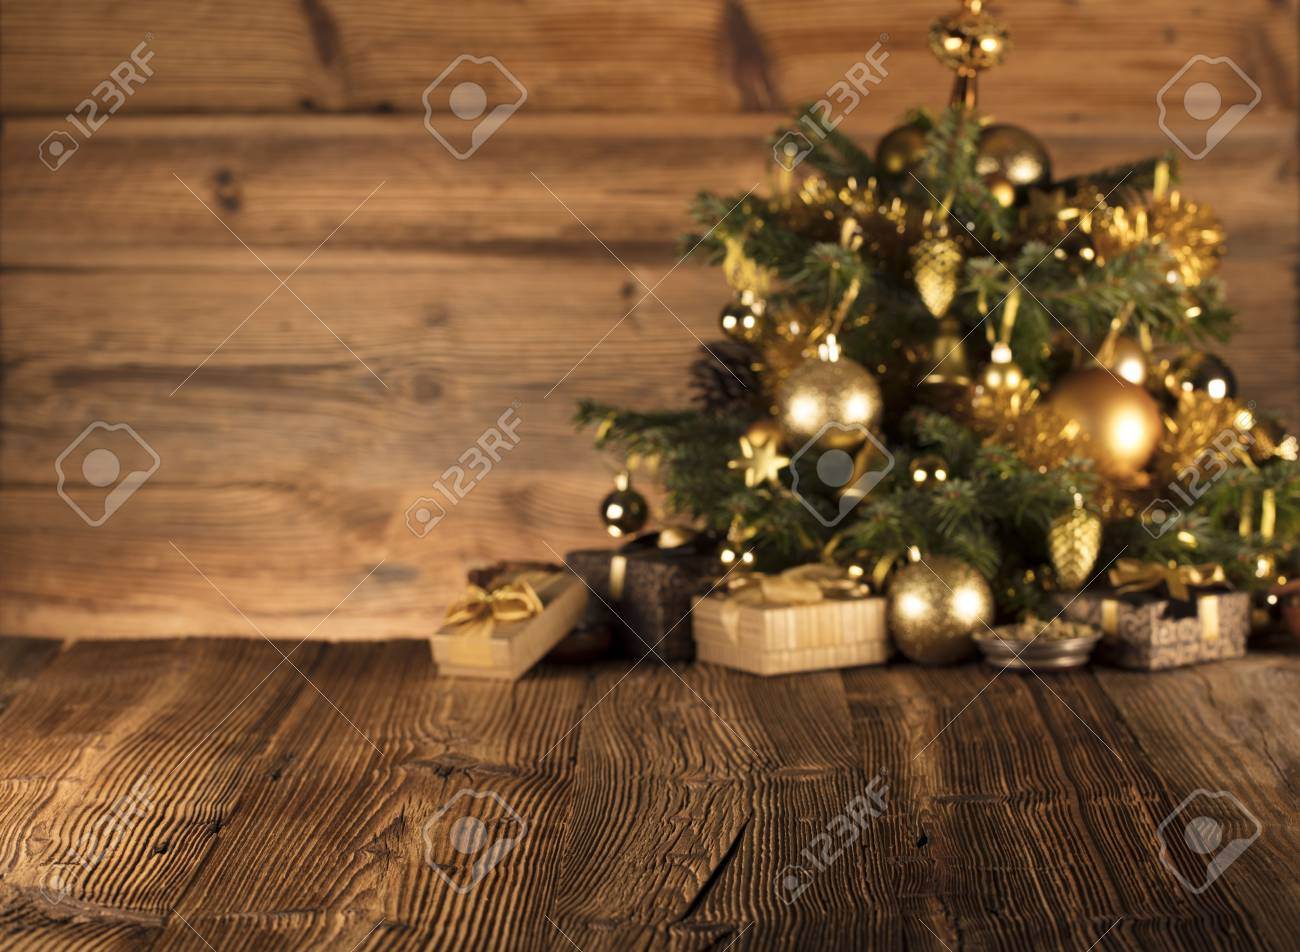 Christmas Decoration In Golden And Brownish Aesthetics With Presents